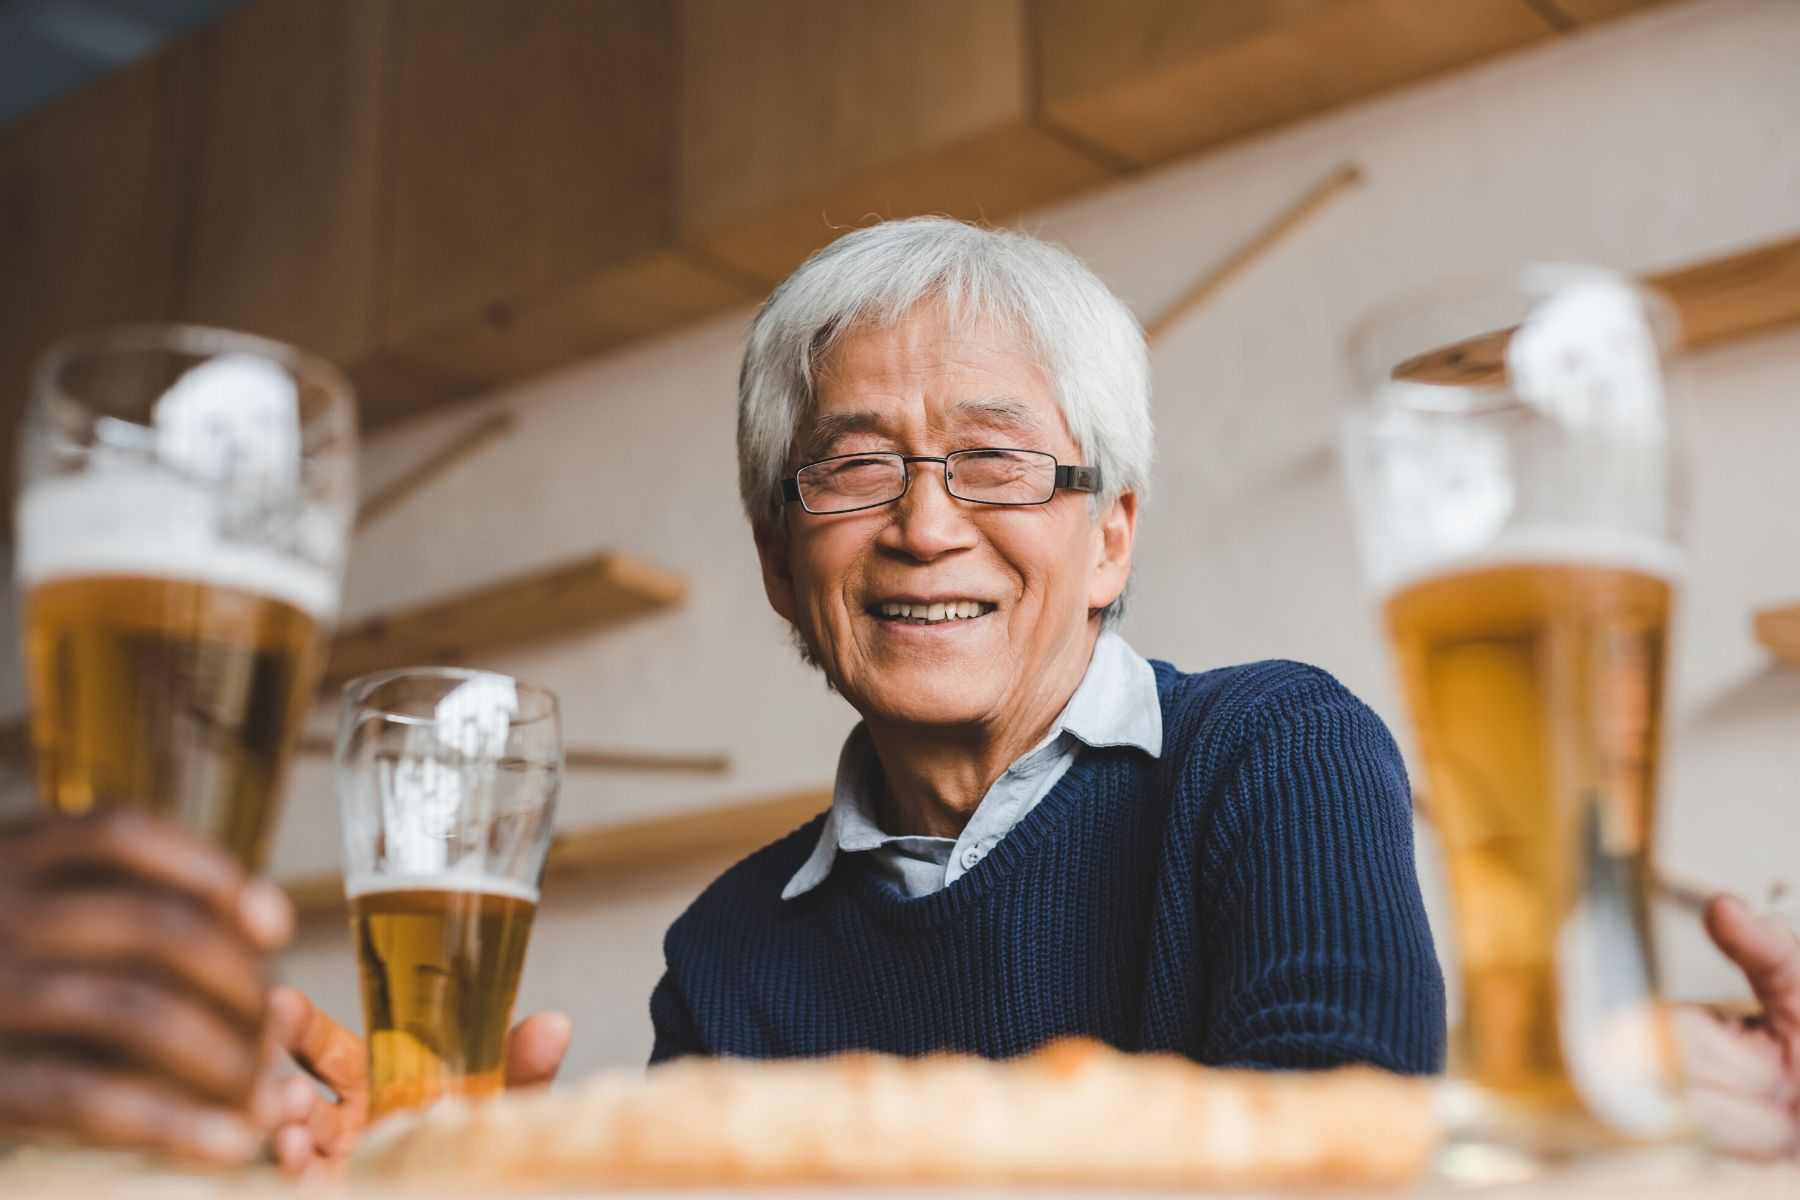 HappyFresh_Health_Benefits_Of-Beer_Old_Man